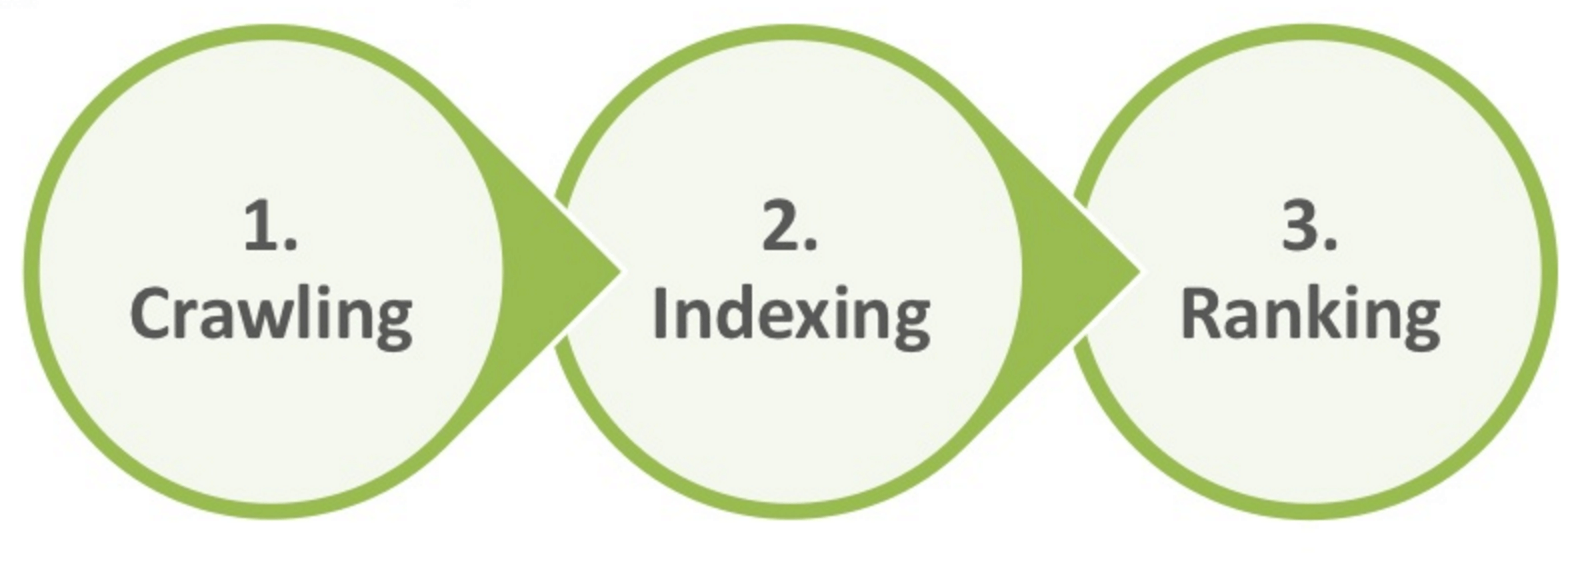 Crawling Indexing Ranking